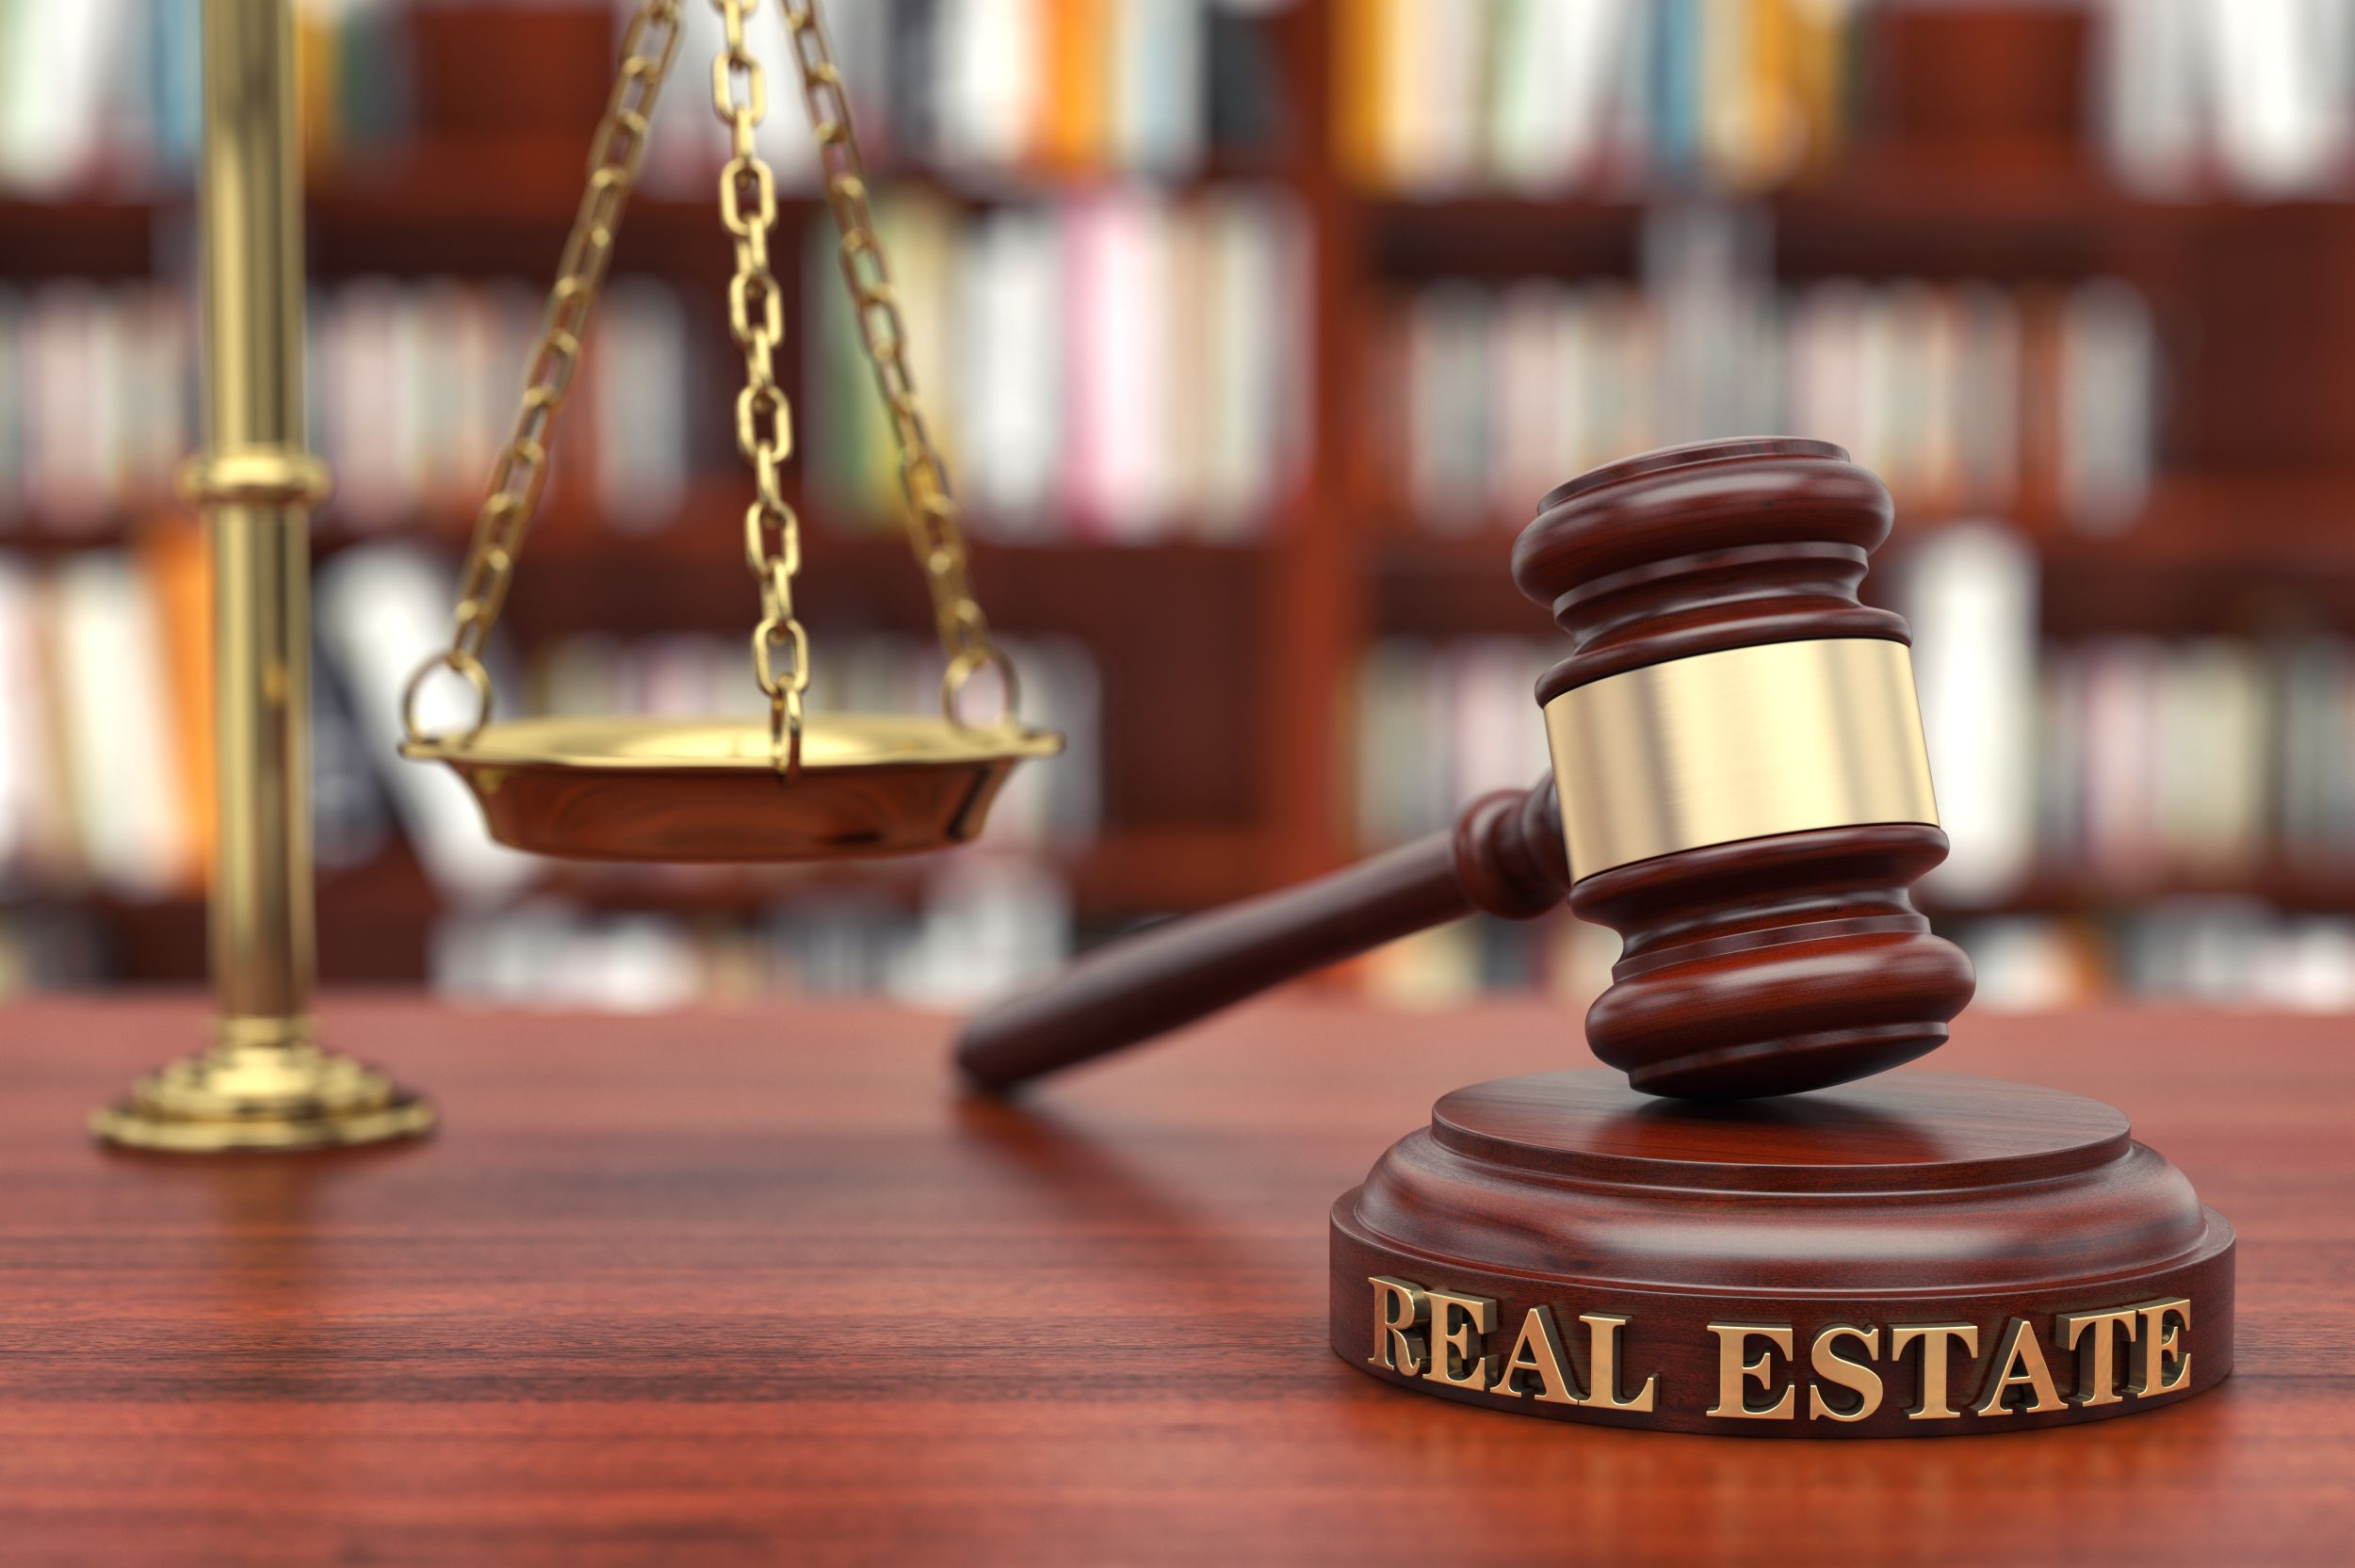 Learn How to Find an Attorney for Real Estate | SmartGuy